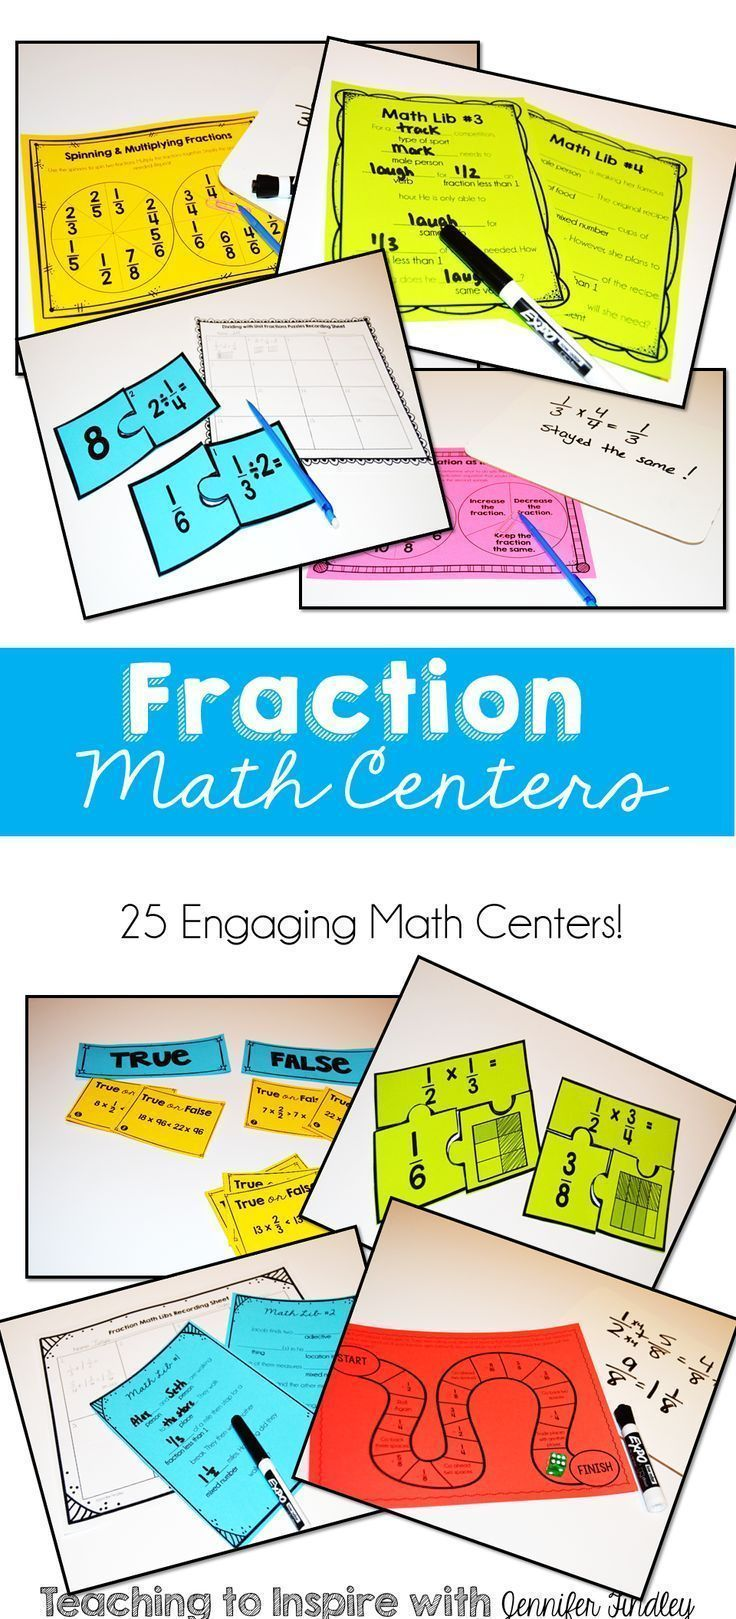 85 best 5th grade math images on Pinterest | Teaching ideas ...